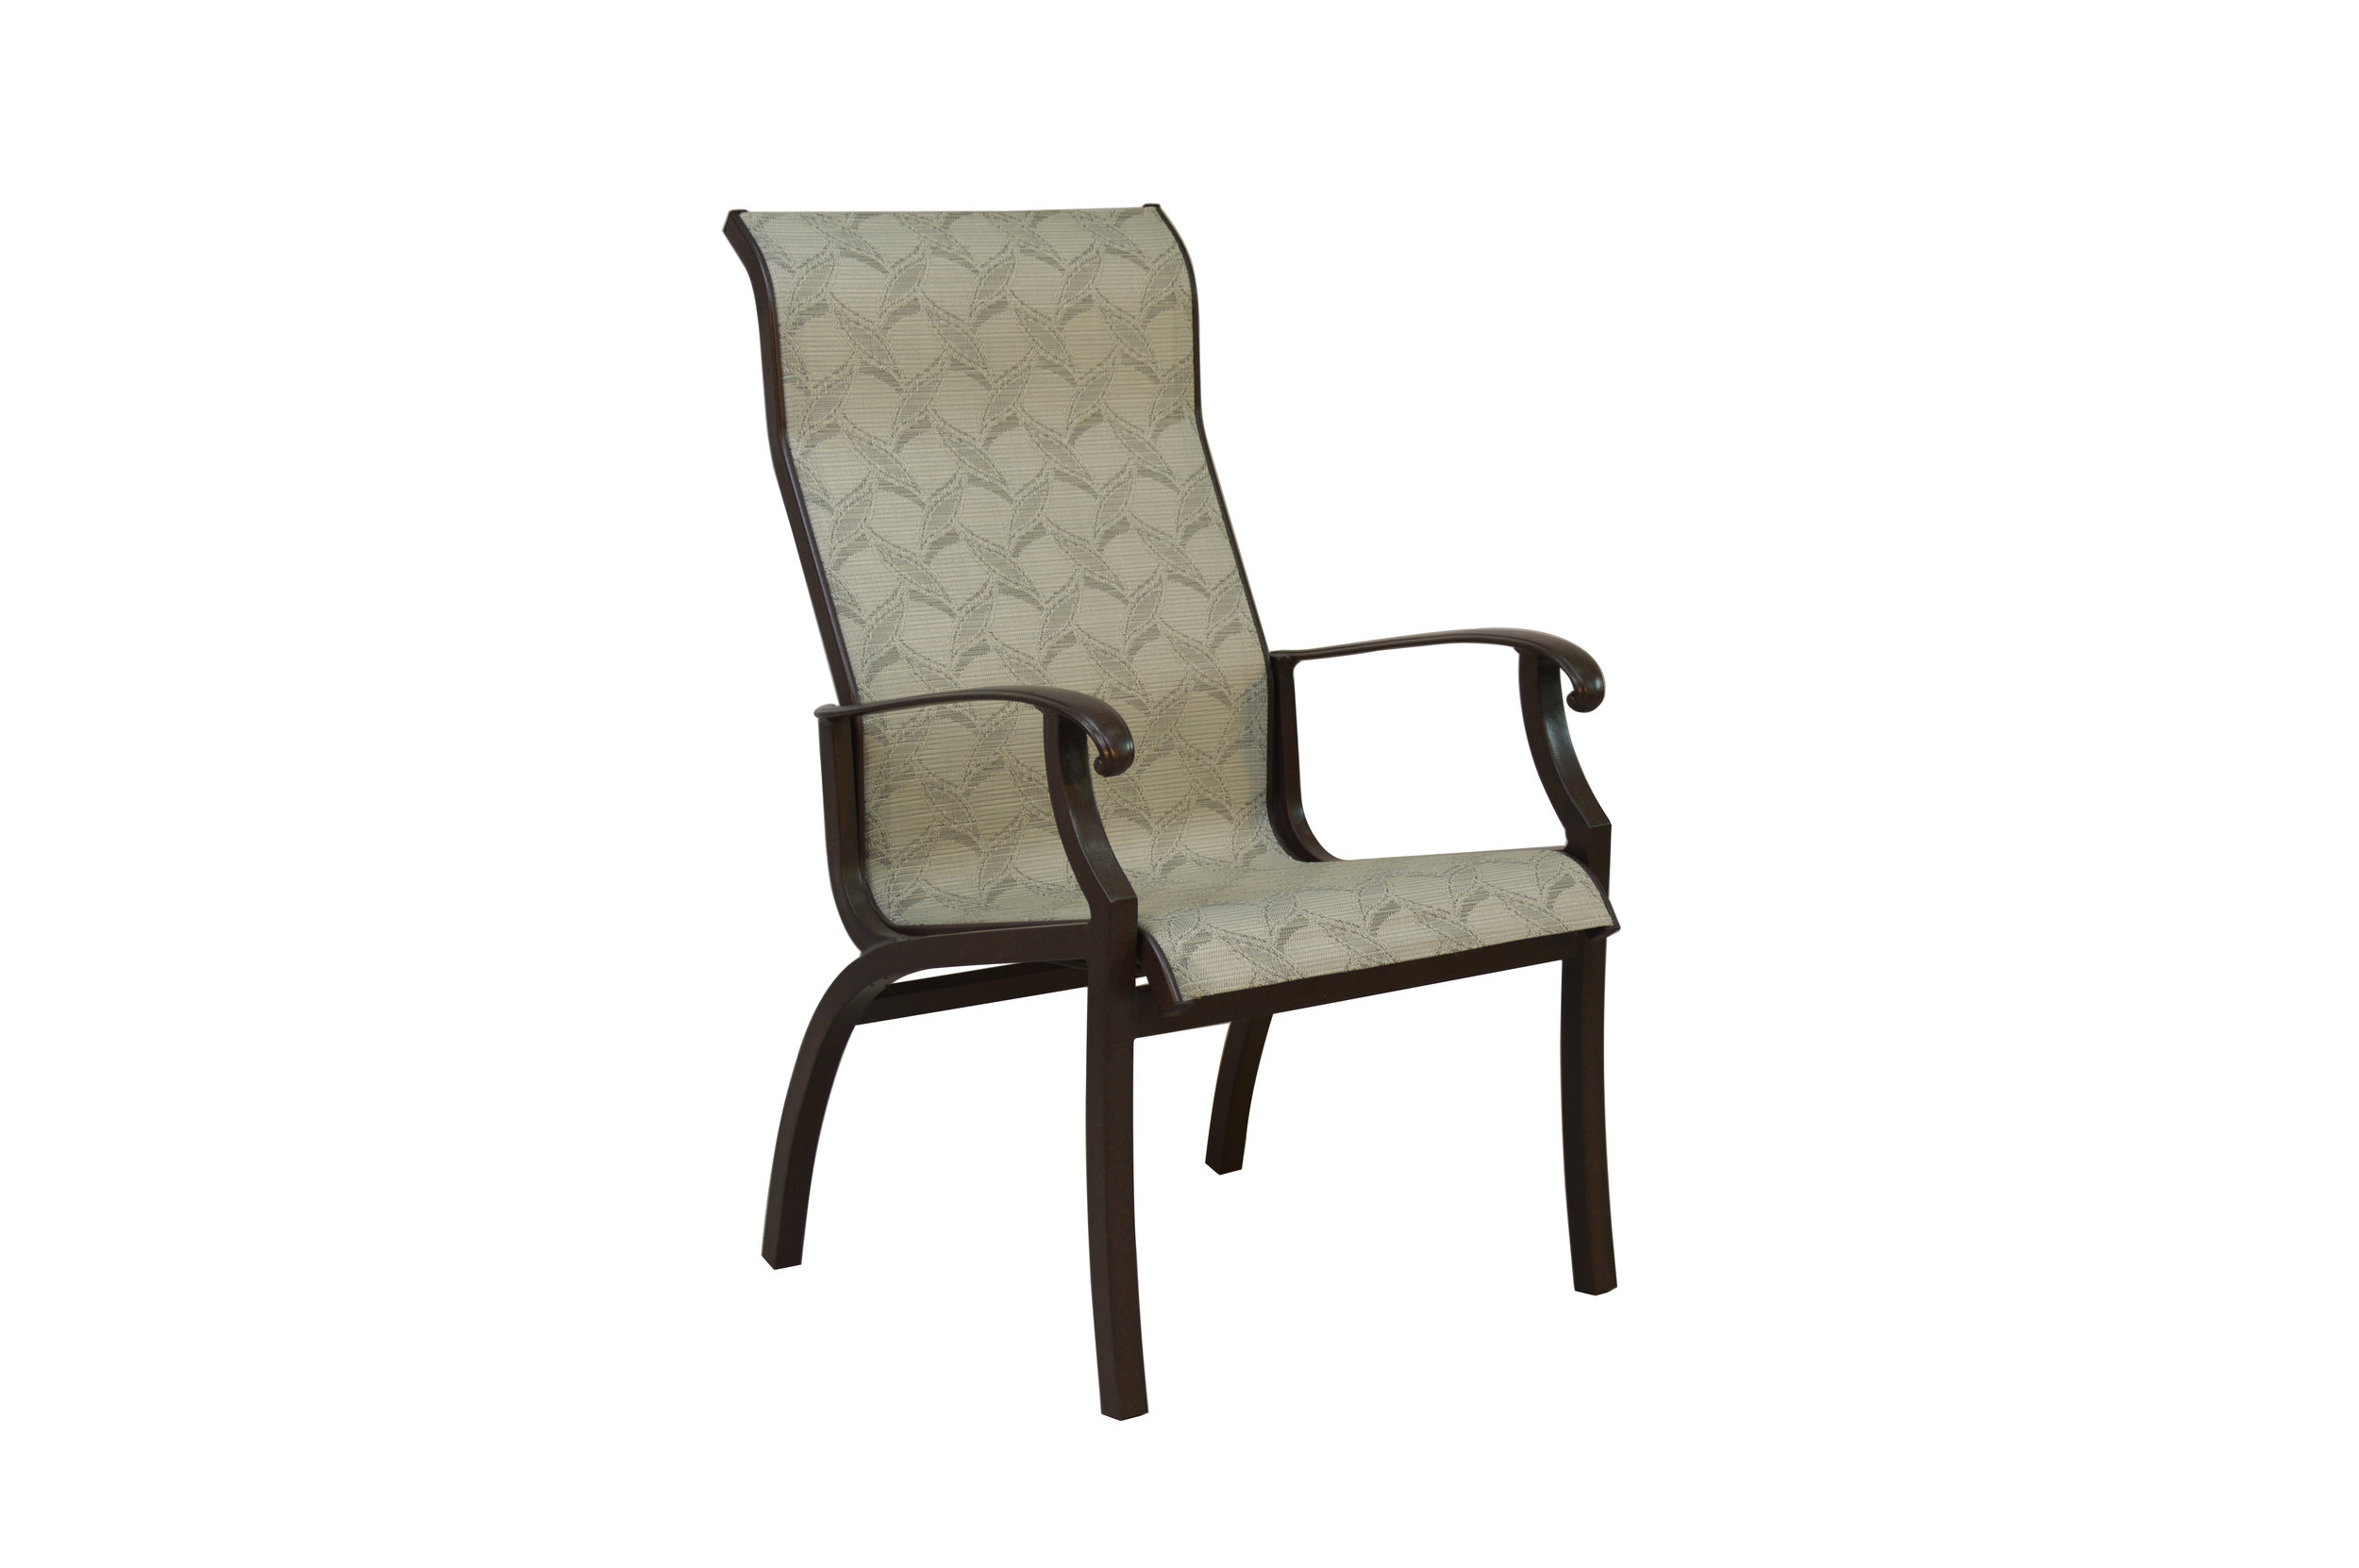 602321 Laguna Dining Chair   24.2 x 29.2 x 42